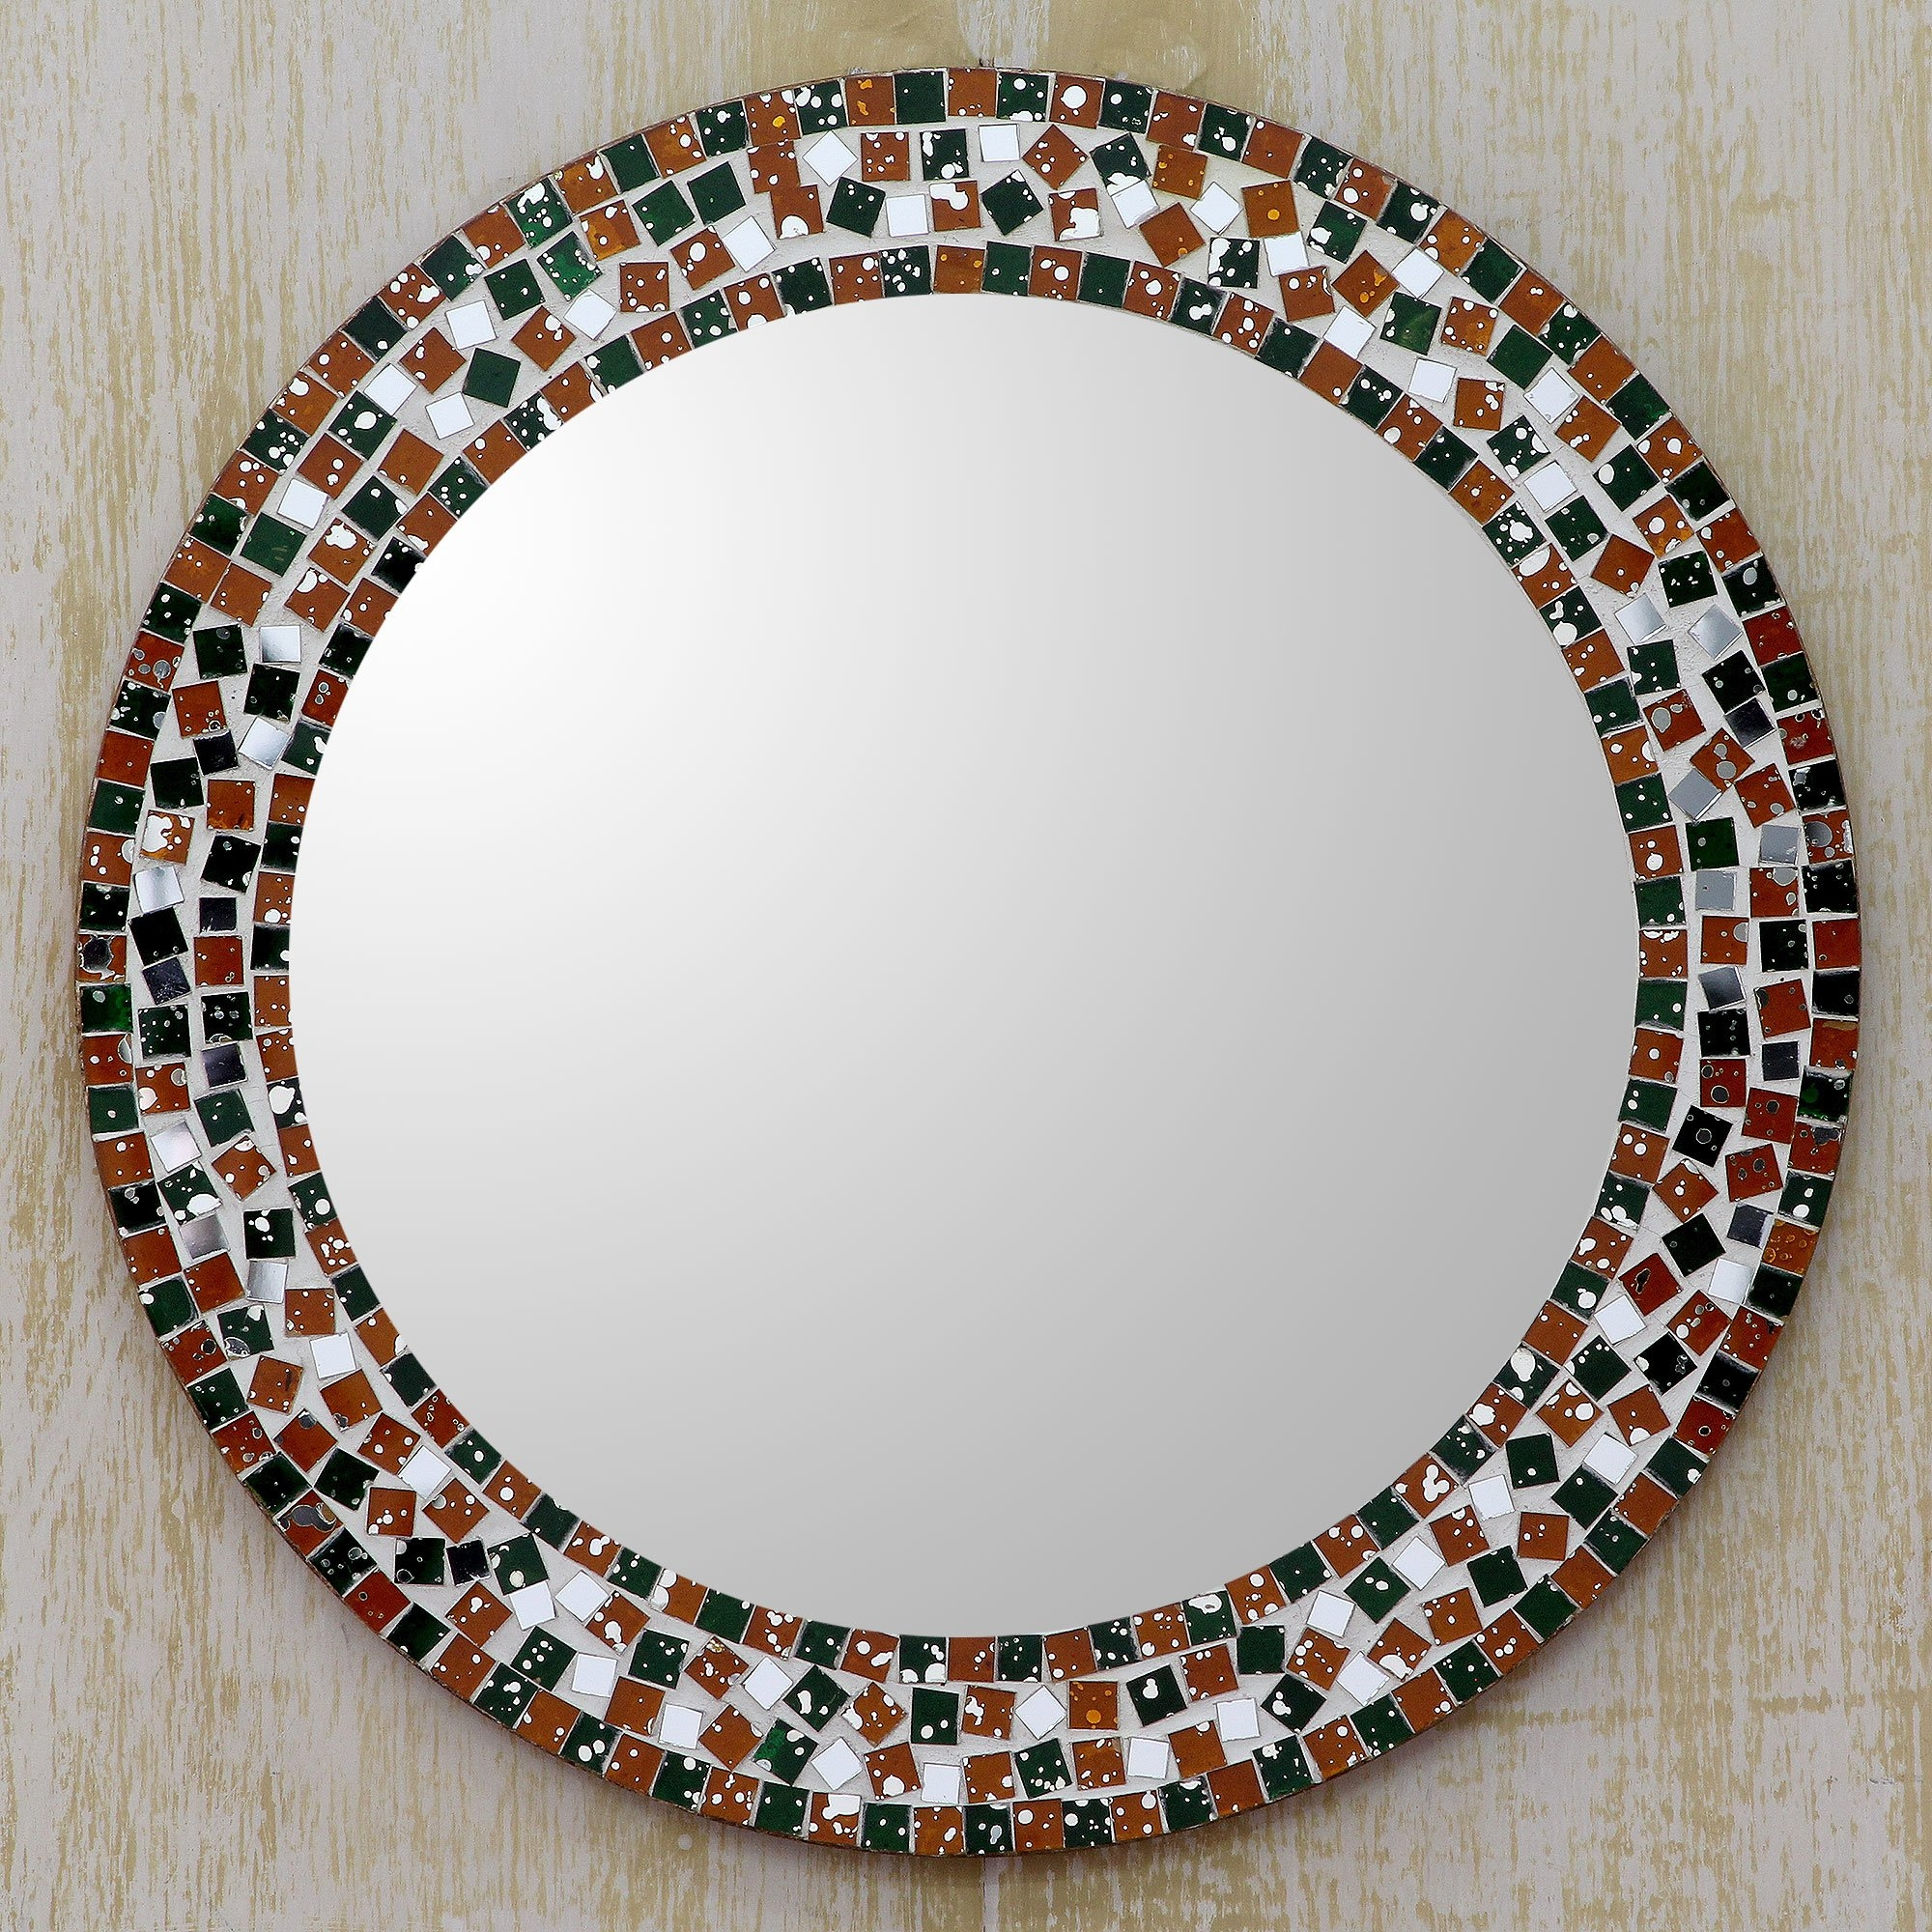 Novica Forest Mosaic Artisan Crafted Round Wall Mirror With Glass With Regard To Mosaic Wall Mirror (Image 10 of 15)